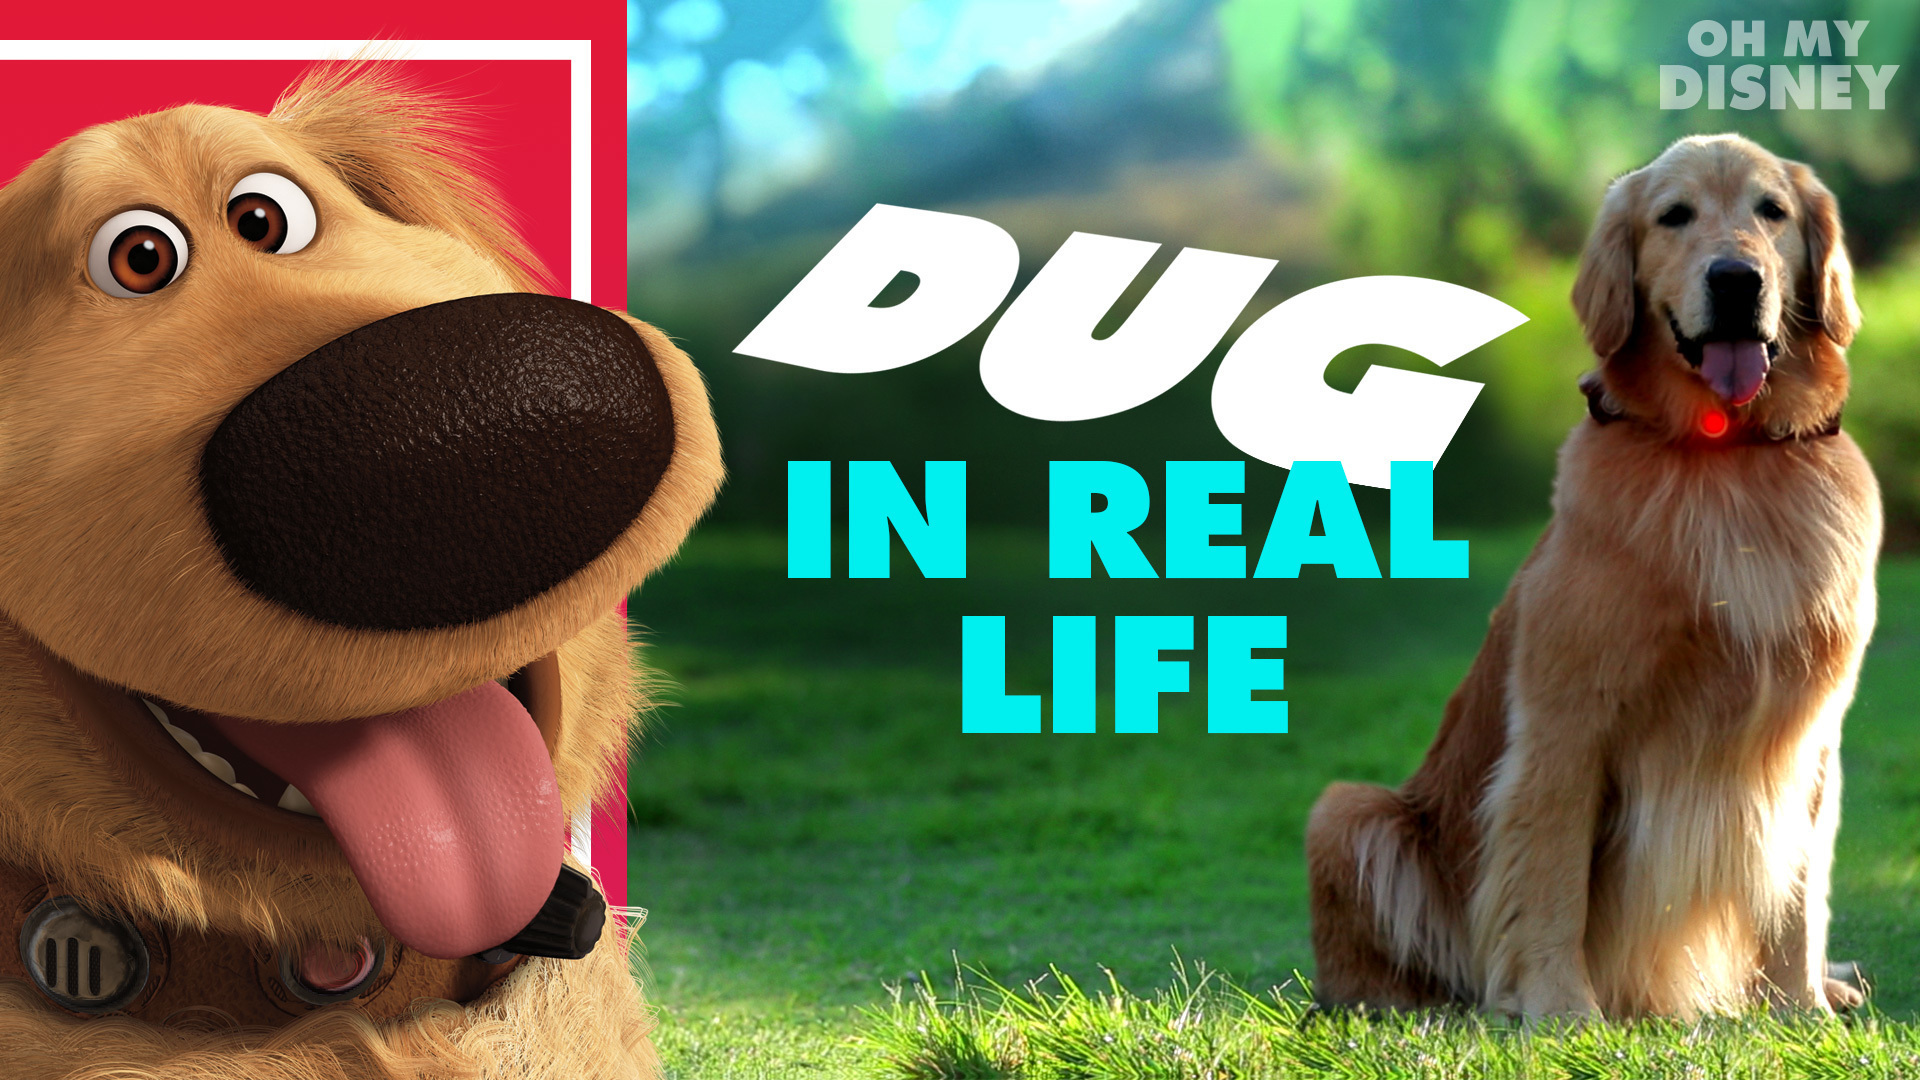 Disney•Pixar's Dug the Talking Dog In Real Life | Oh My Disney IRL